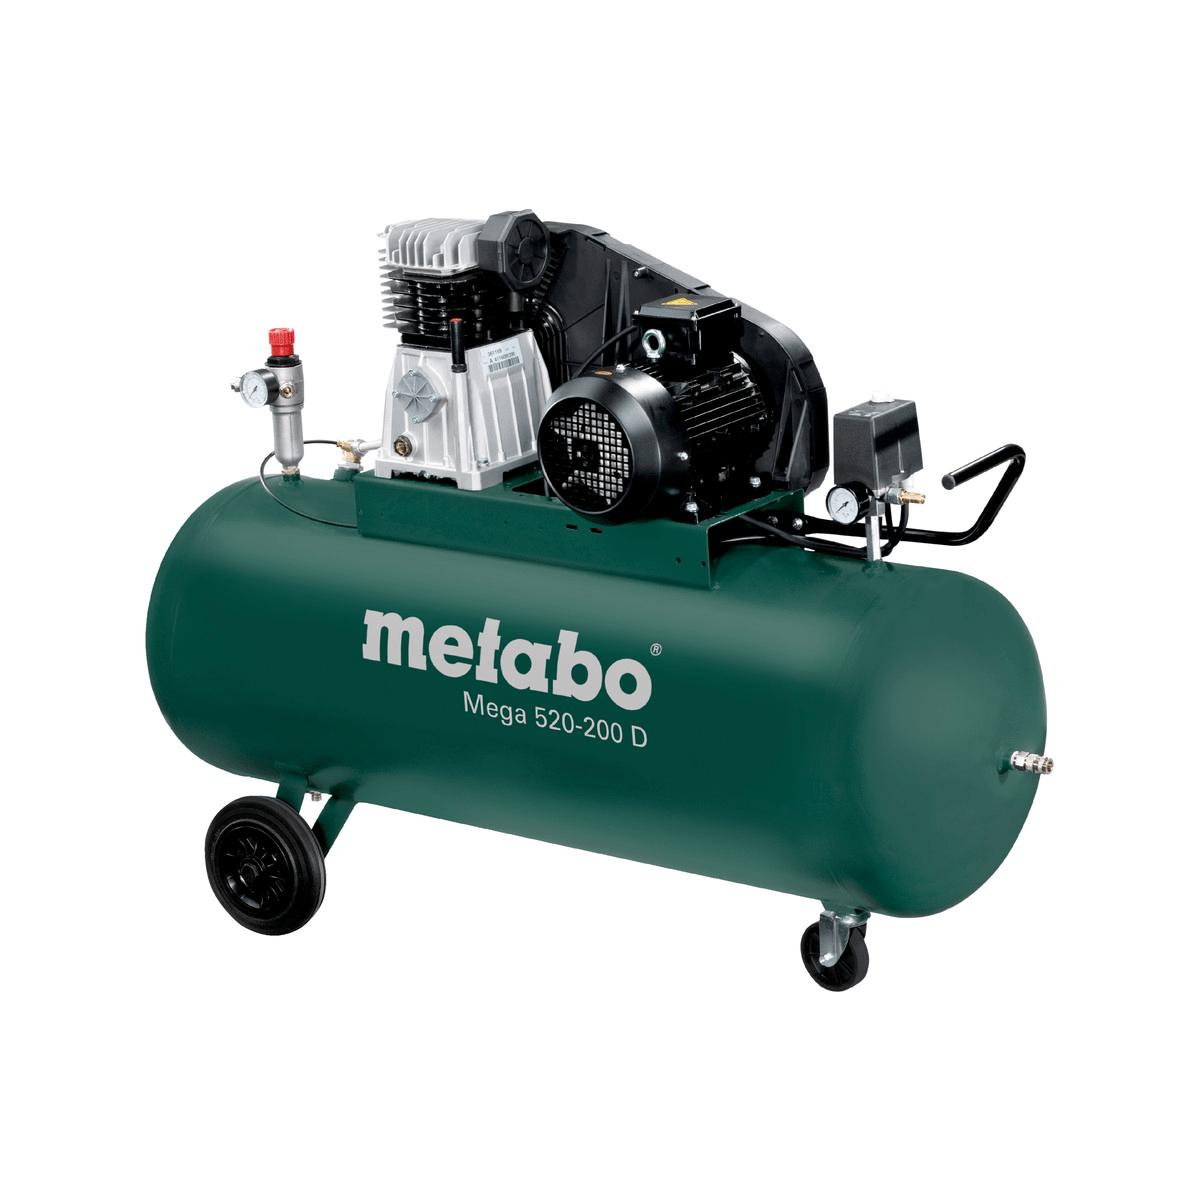 metabo kompressor mega 520 200 d 400v 200 liter 10 bar. Black Bedroom Furniture Sets. Home Design Ideas